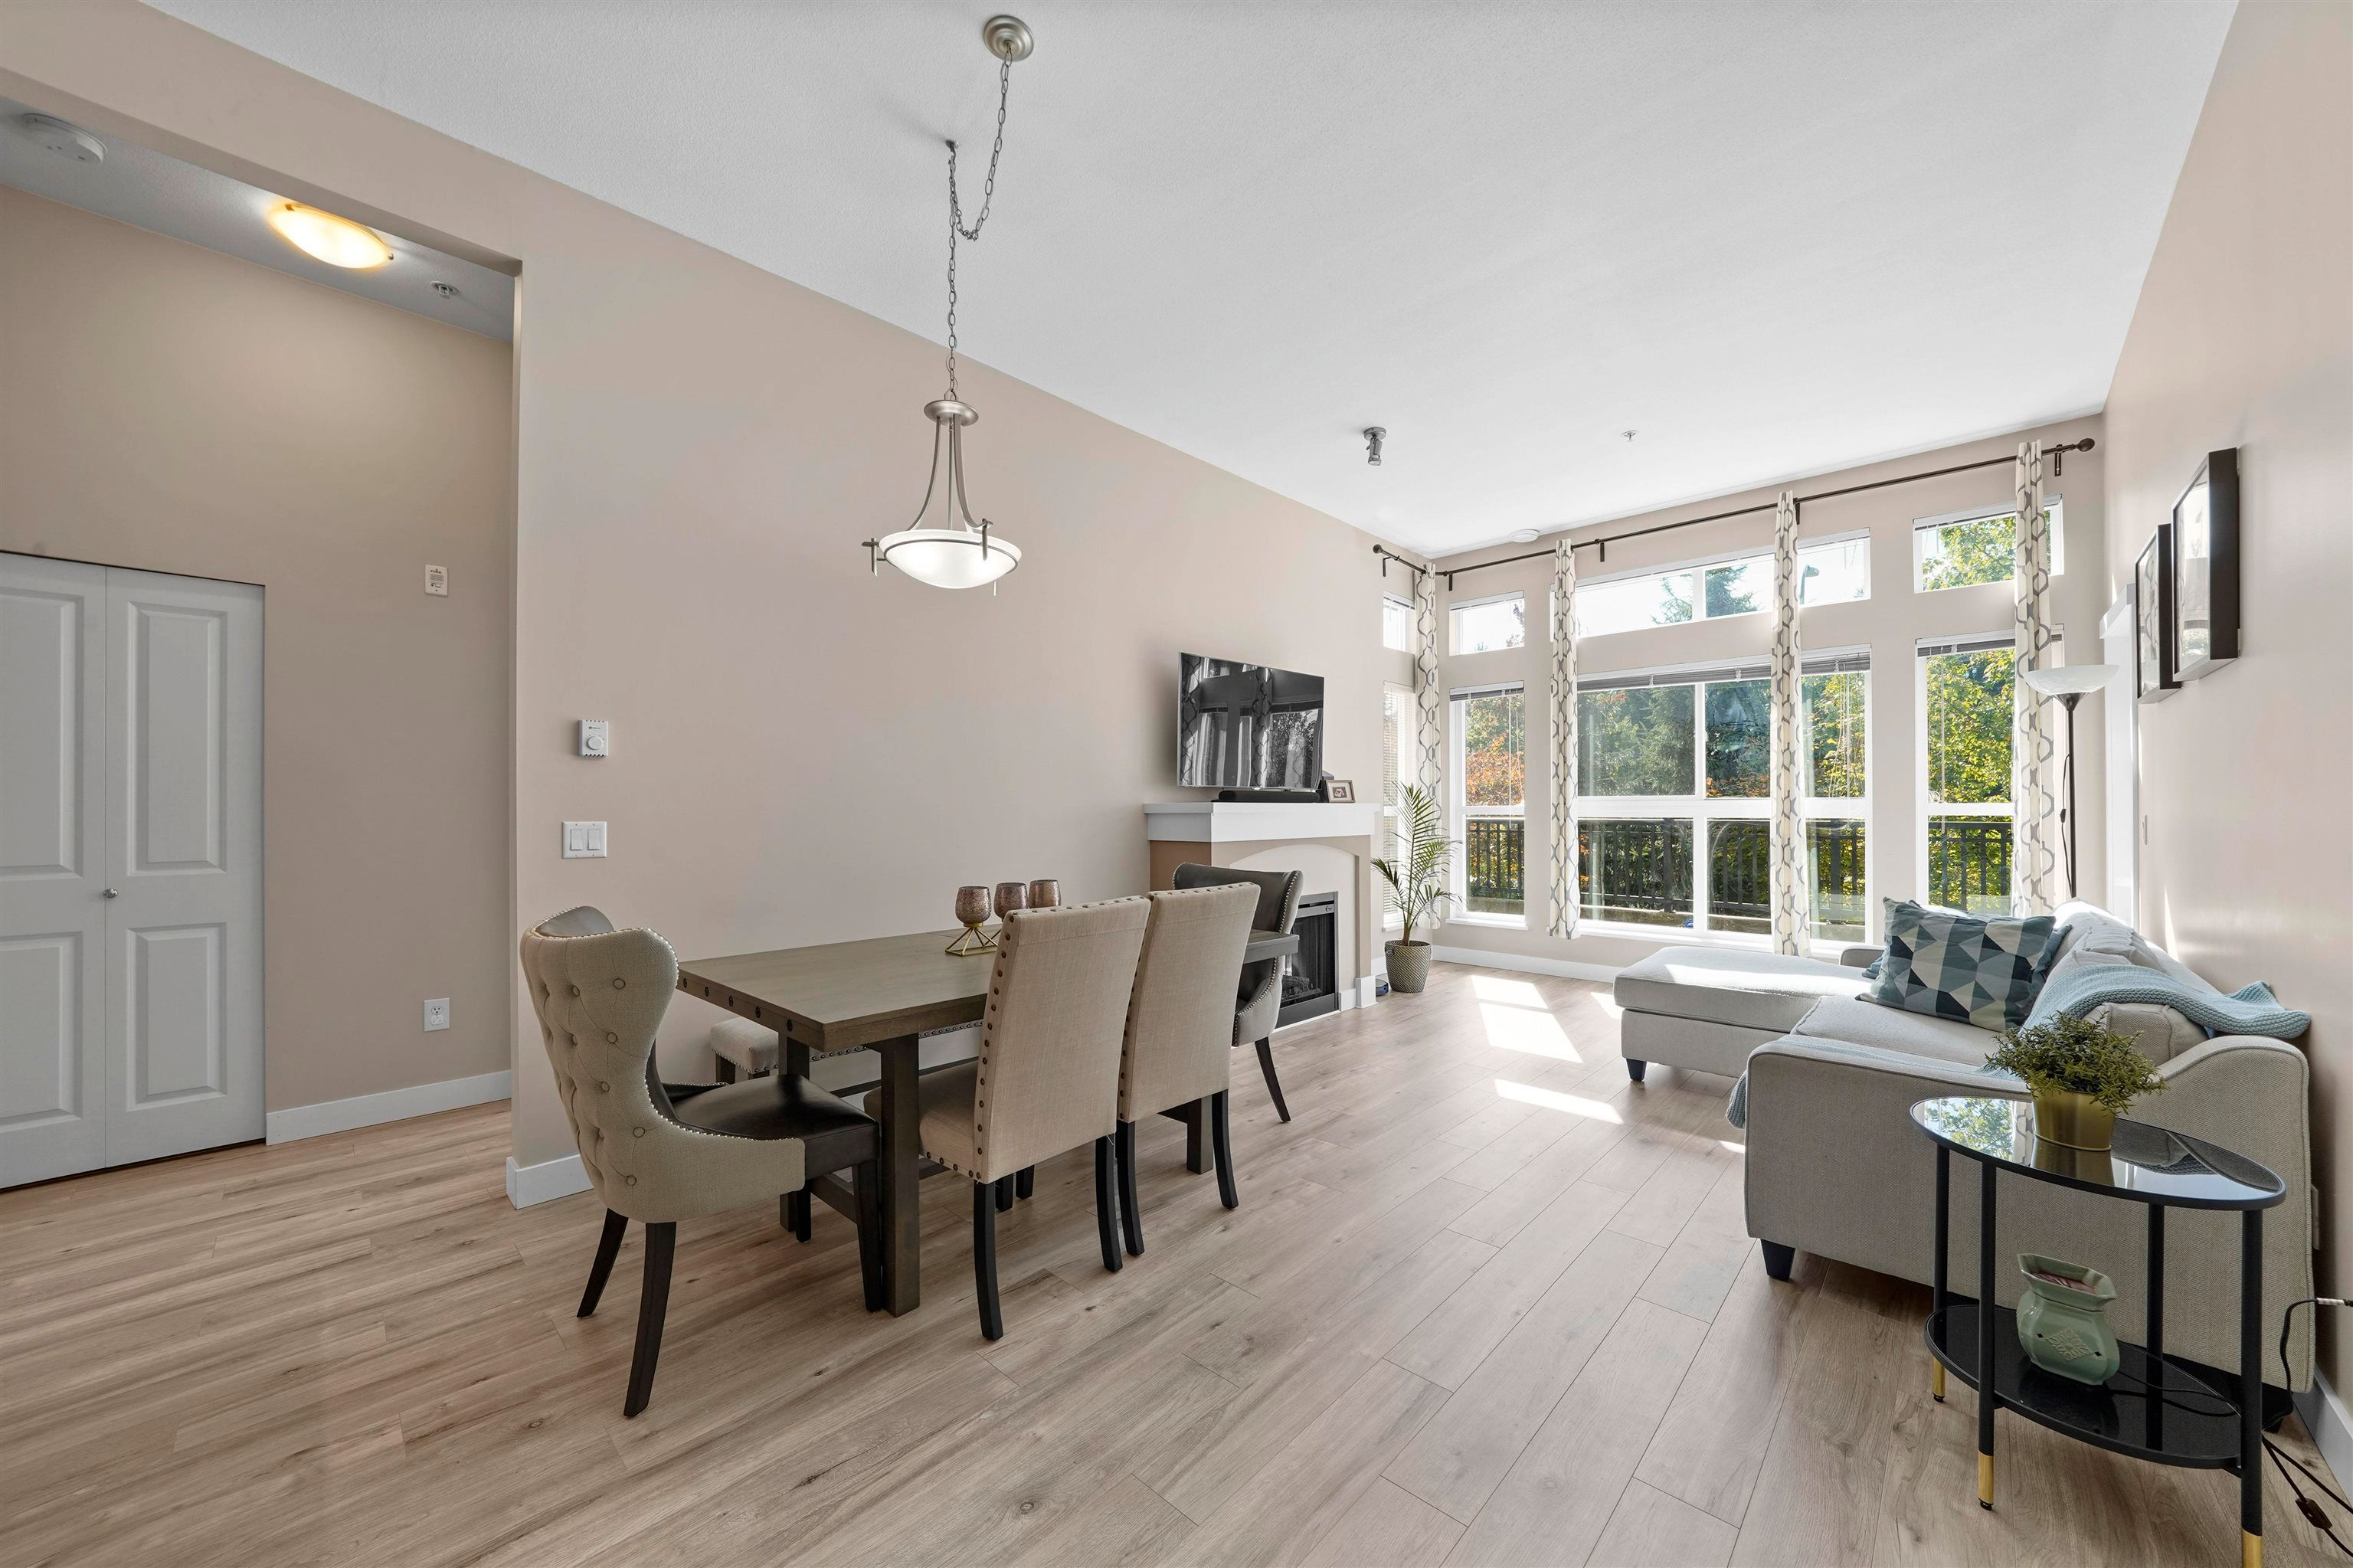 """Main Photo: 103 1330 GENEST Way in Coquitlam: Westwood Plateau Condo for sale in """"The Lanterns"""" : MLS®# R2620914"""